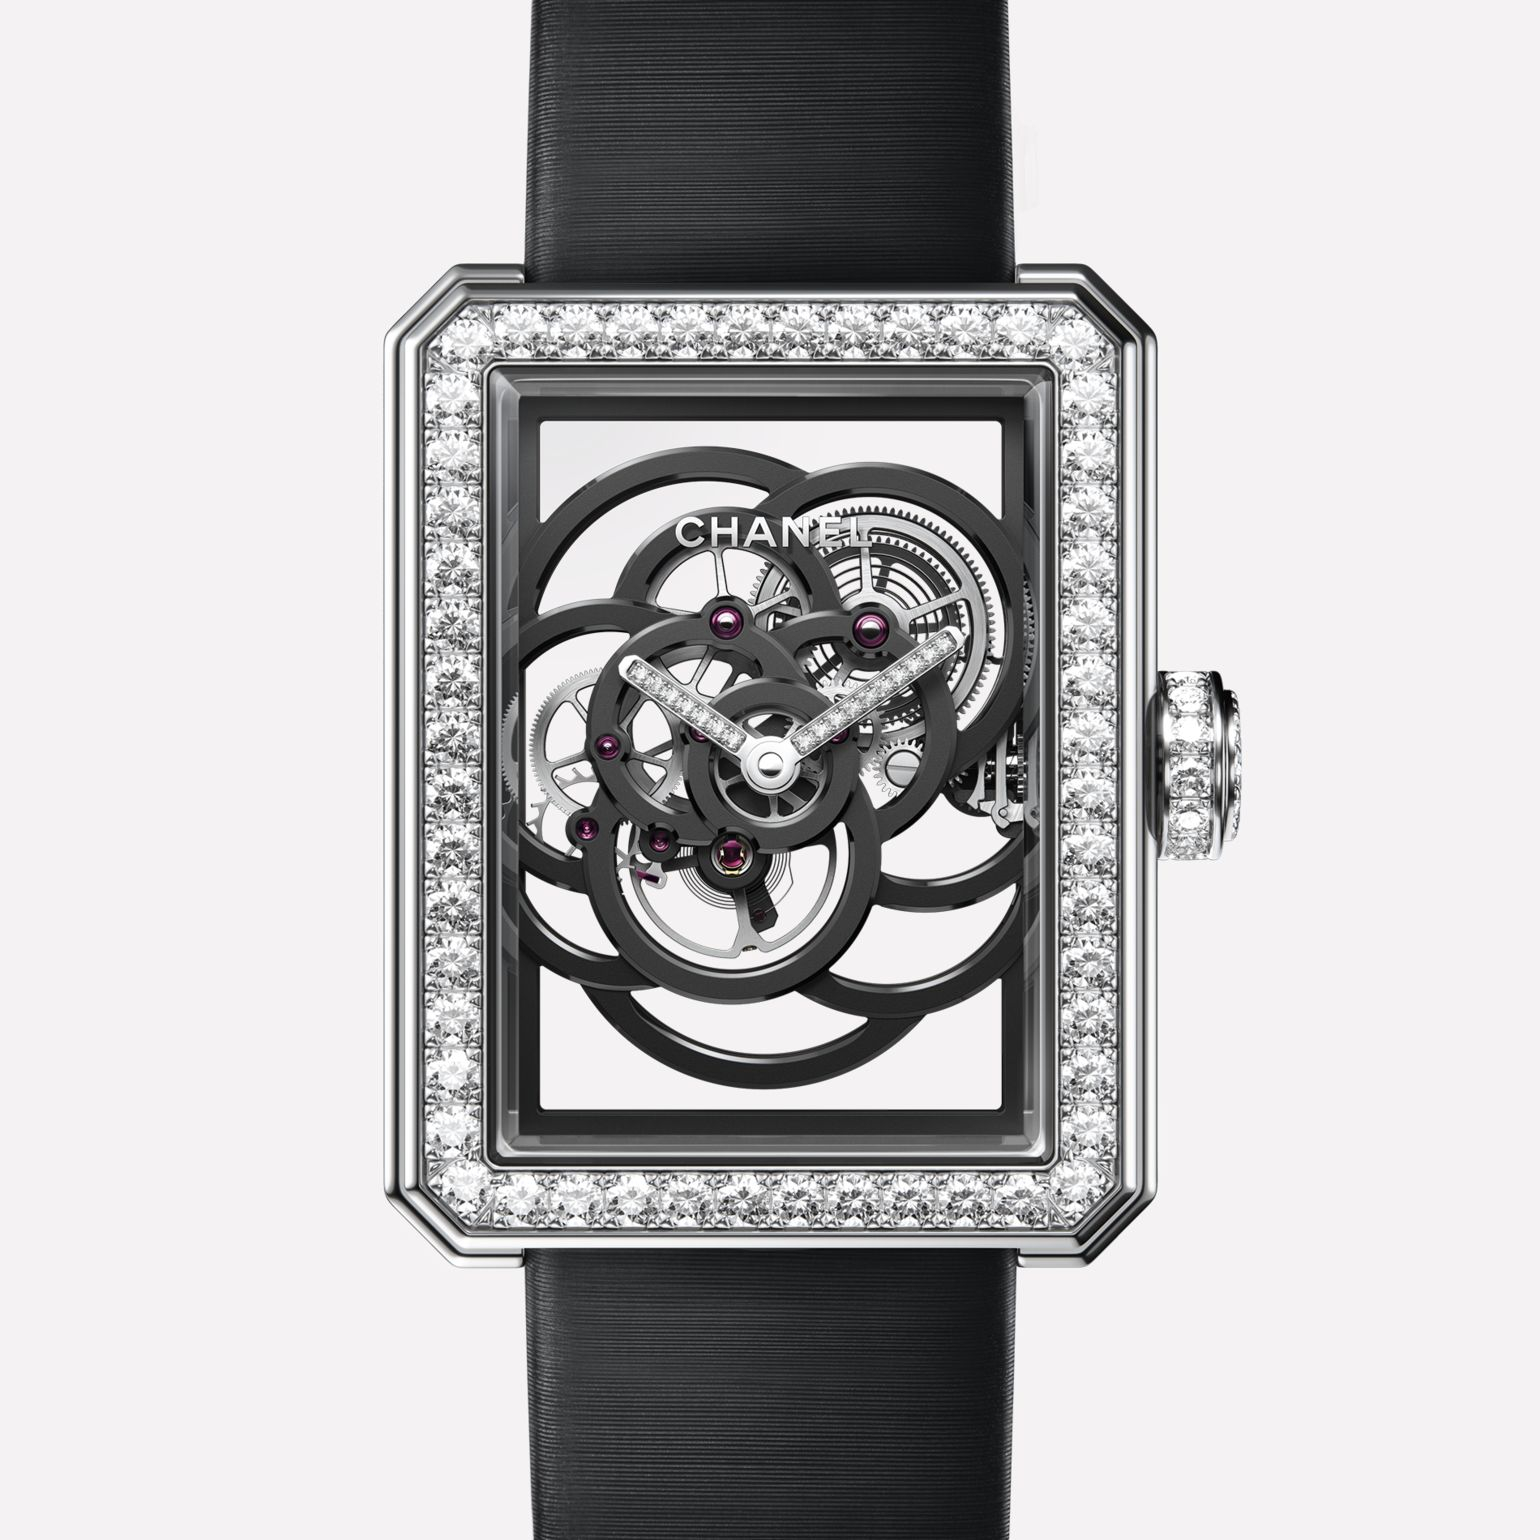 Première Camélia Skeleton Watch White gold, case, bezel, hands and crown set with brilliant-cut diamonds